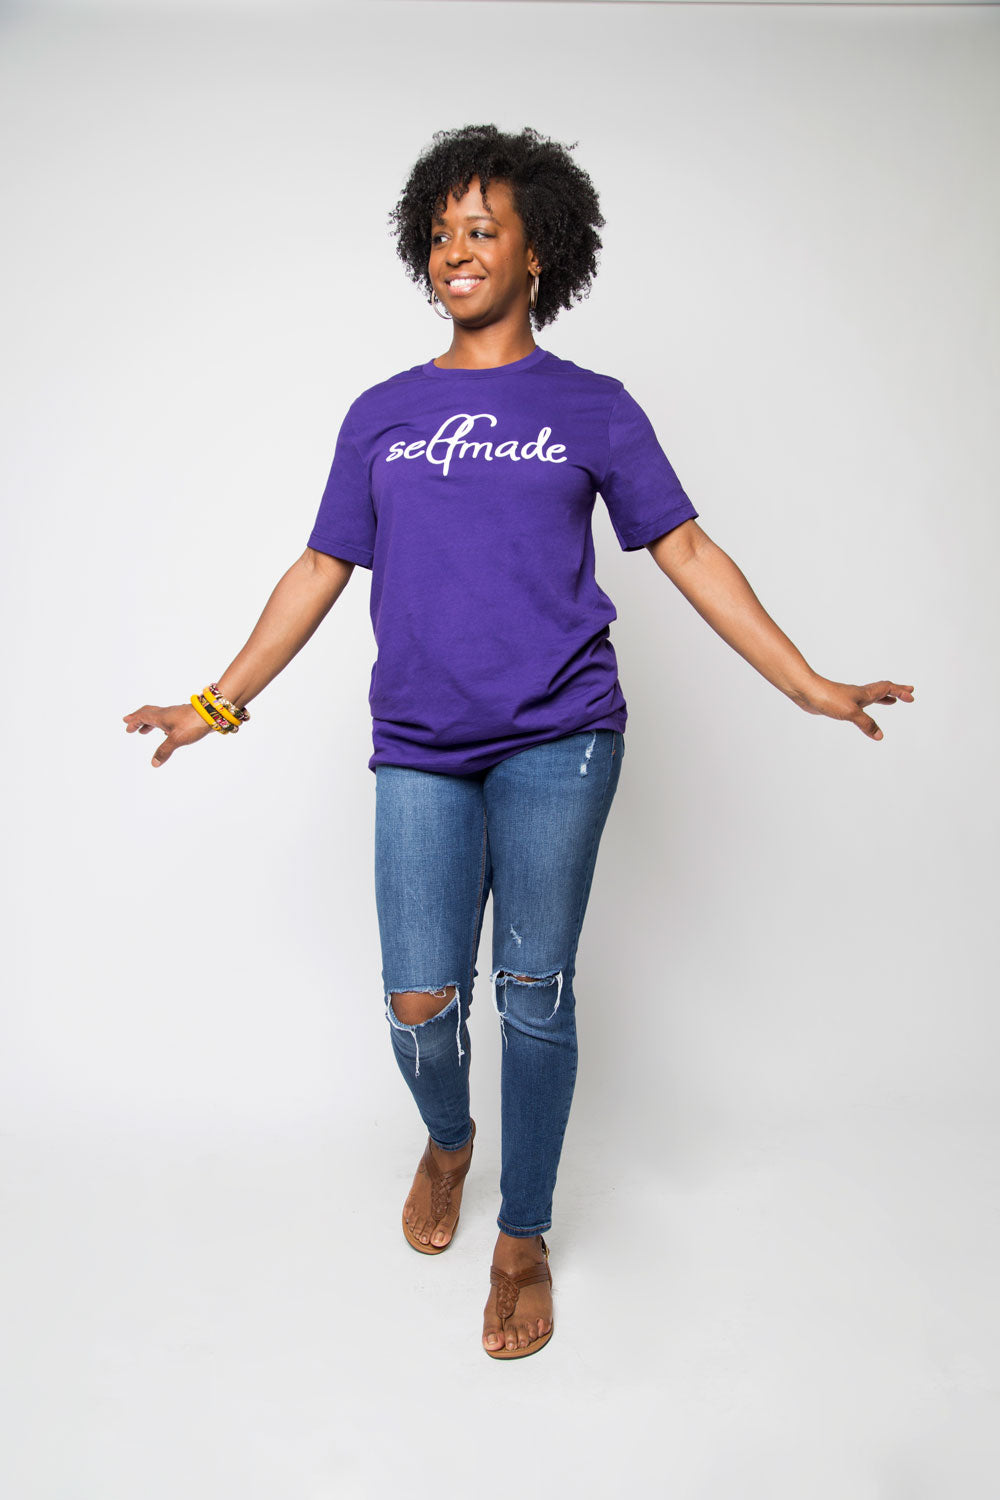 Selfmade Shirt in Purple - Trunk Series, LLC